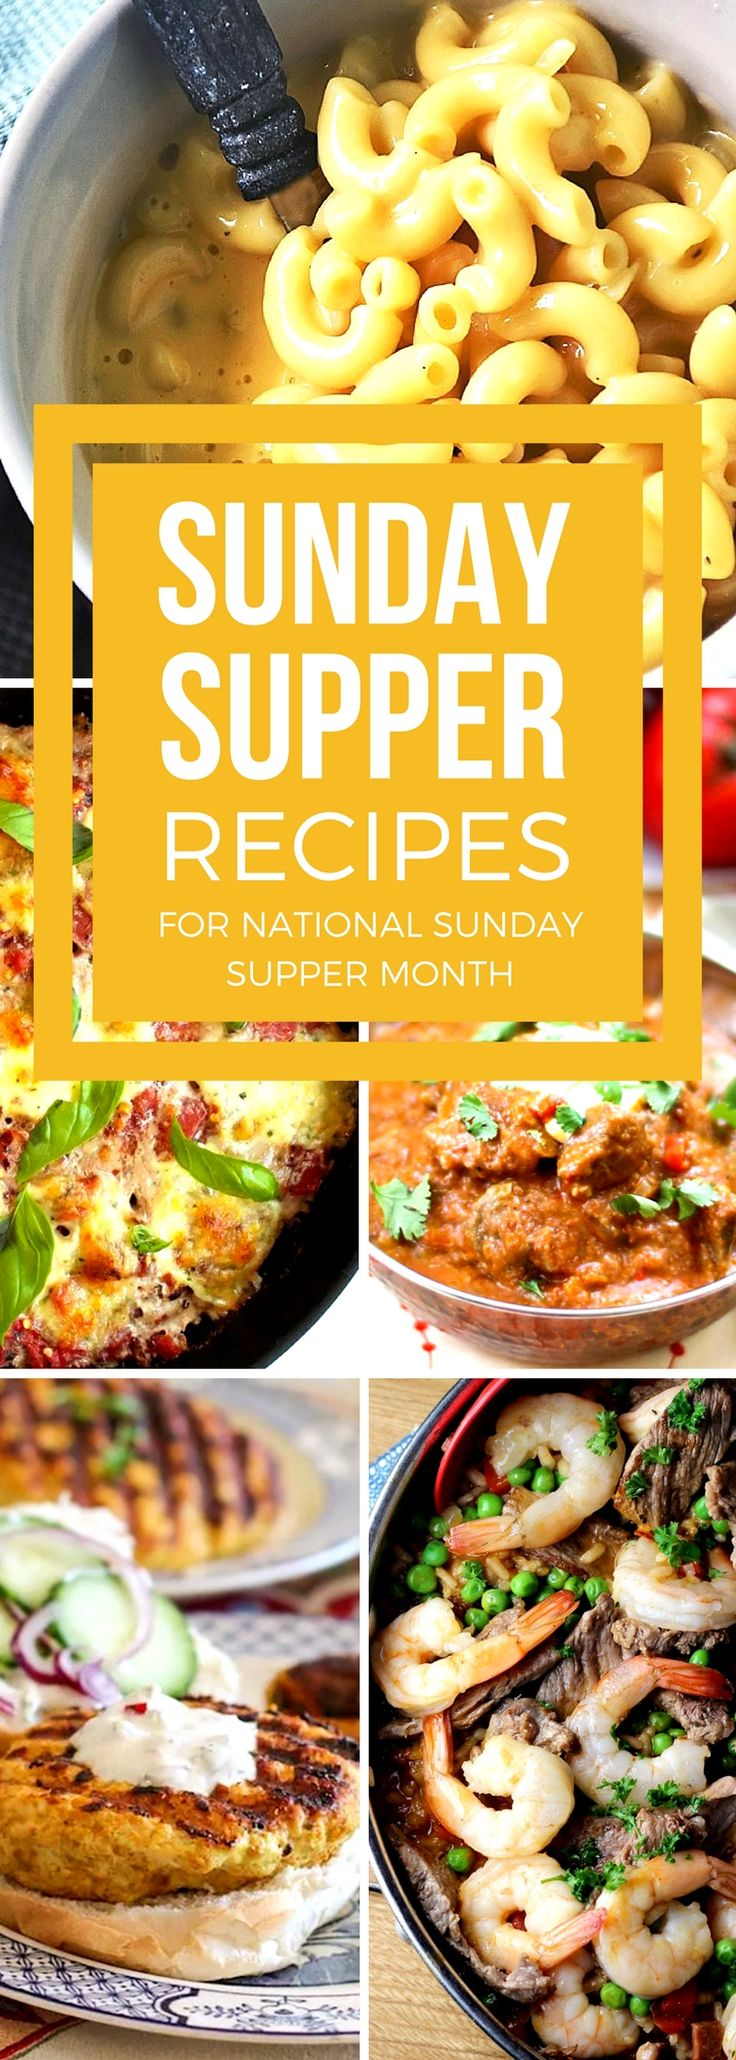 Bring your family back to the dinner table with our favorite Sunday supper recipes. These easy recipes are timeless classics that you and your family will love! With choices from delicious baked casseroles and pastas to flavorful chicken and beef recipes, your perfect family dinner will be waiting at the table to bring everyone together. #SundaySupper #EasyRecipes #DinnerRecipes #ComfortFoodRecipes